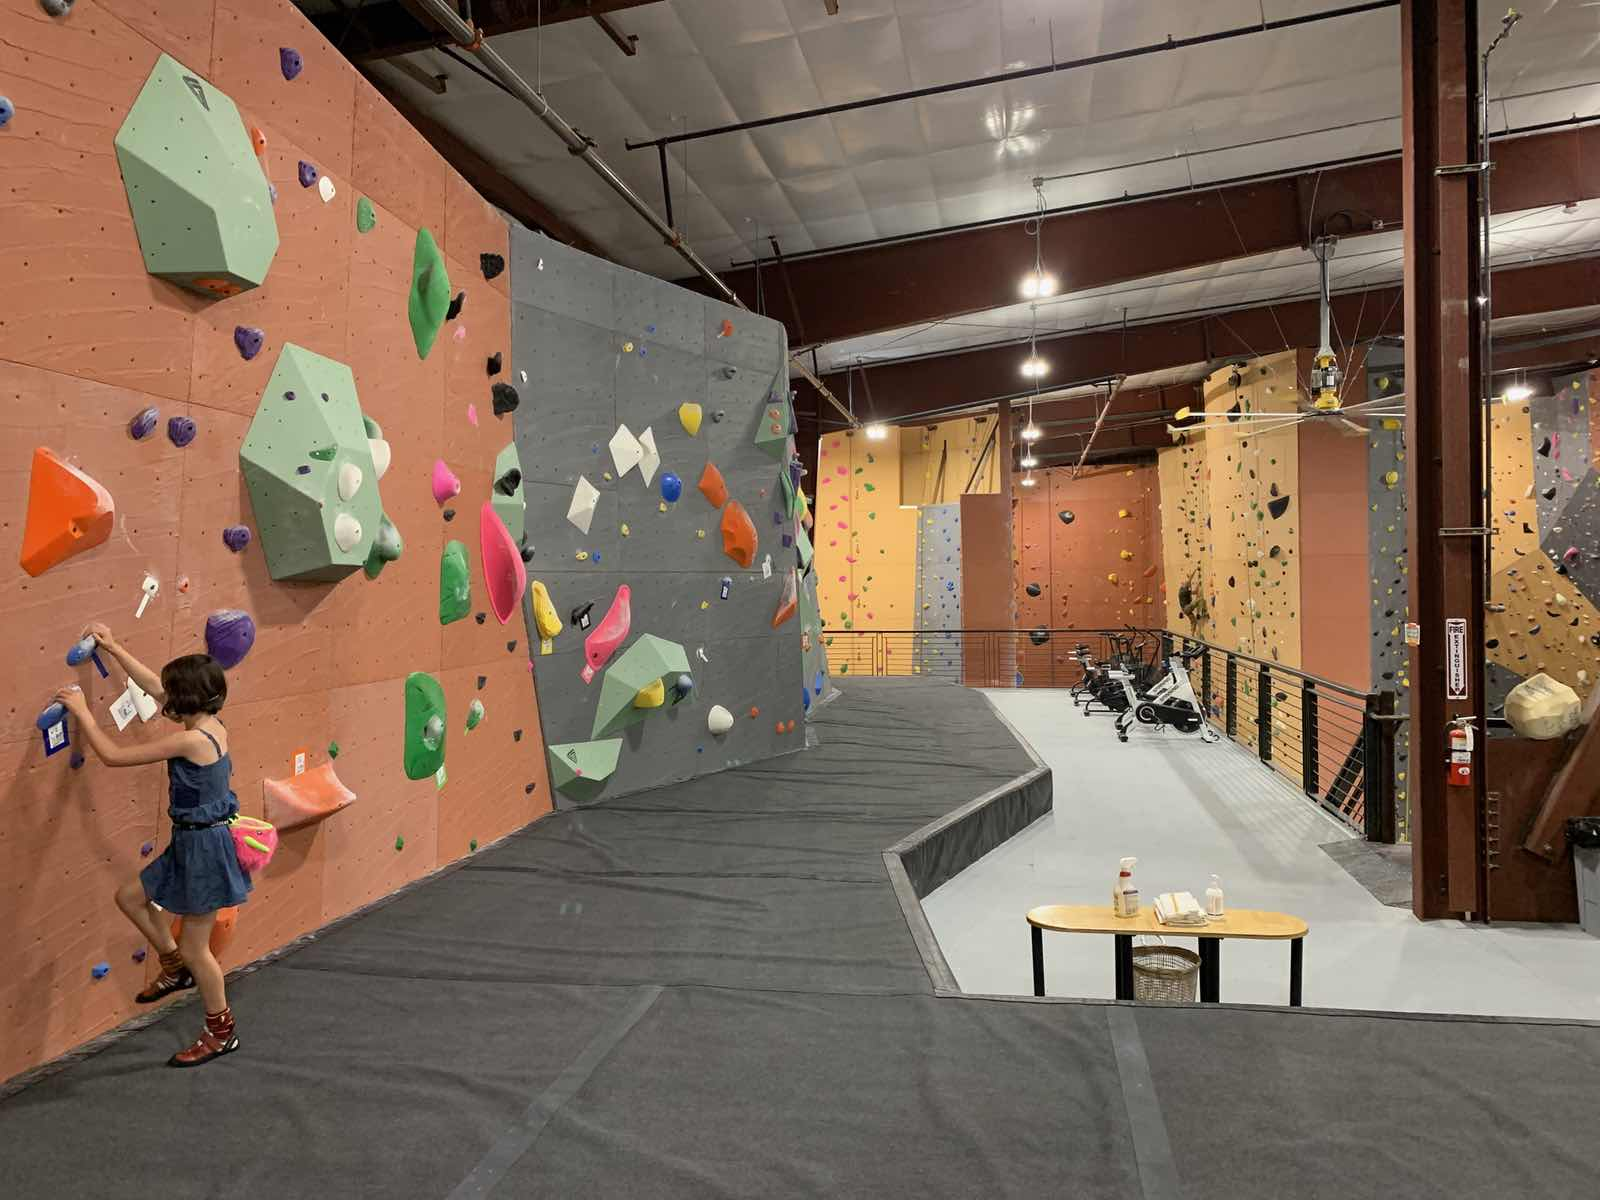 Another section of bouldering at Vertical World North